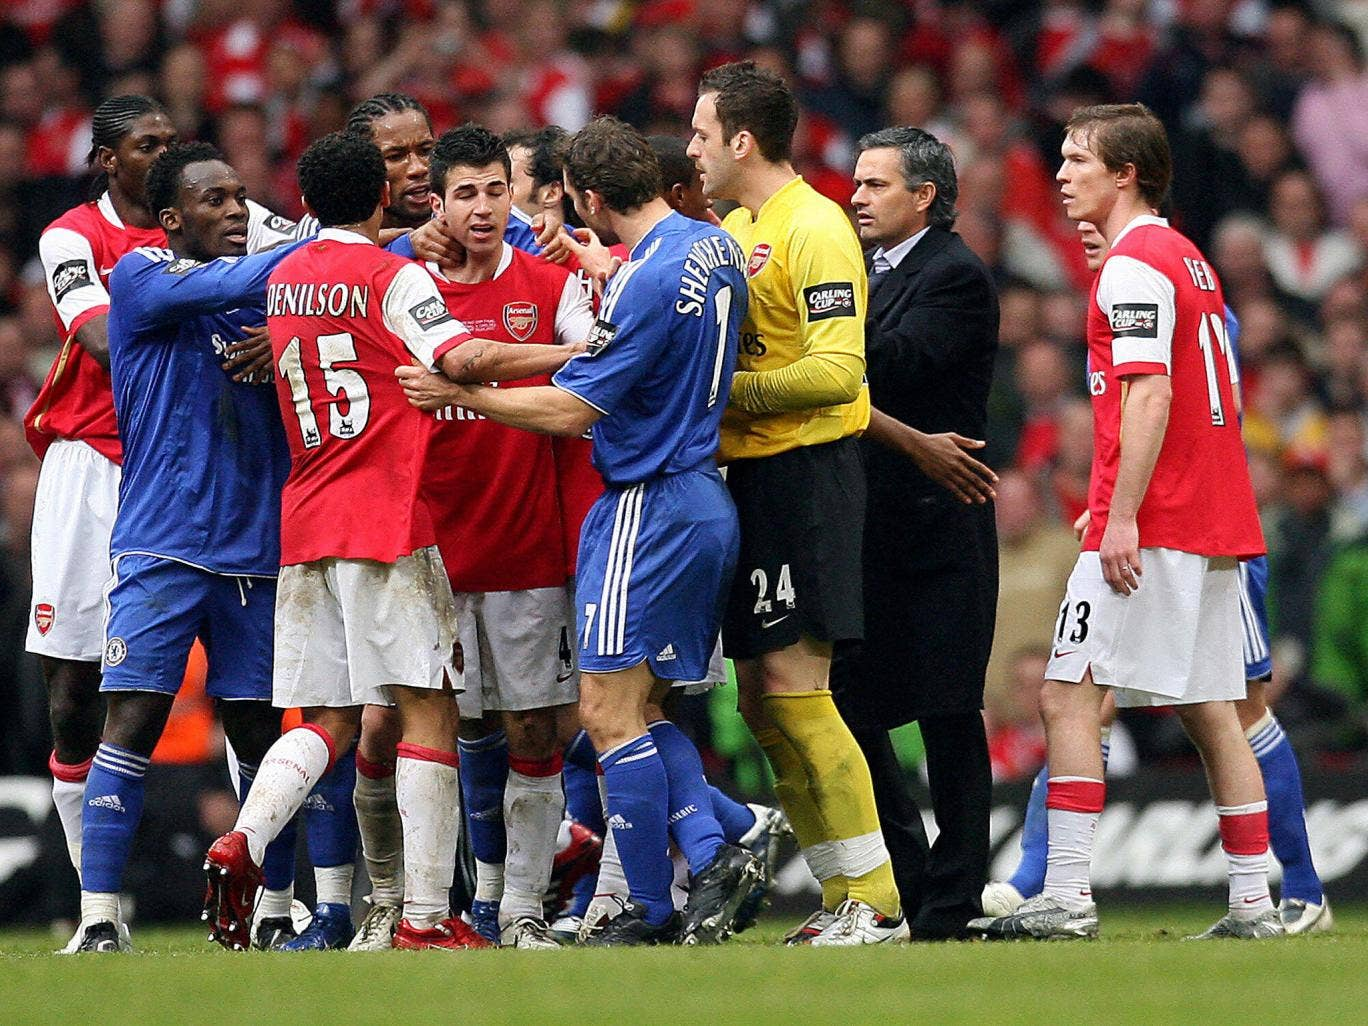 Arsenal and Chelsea players clash in the 2007 Carling Cup final